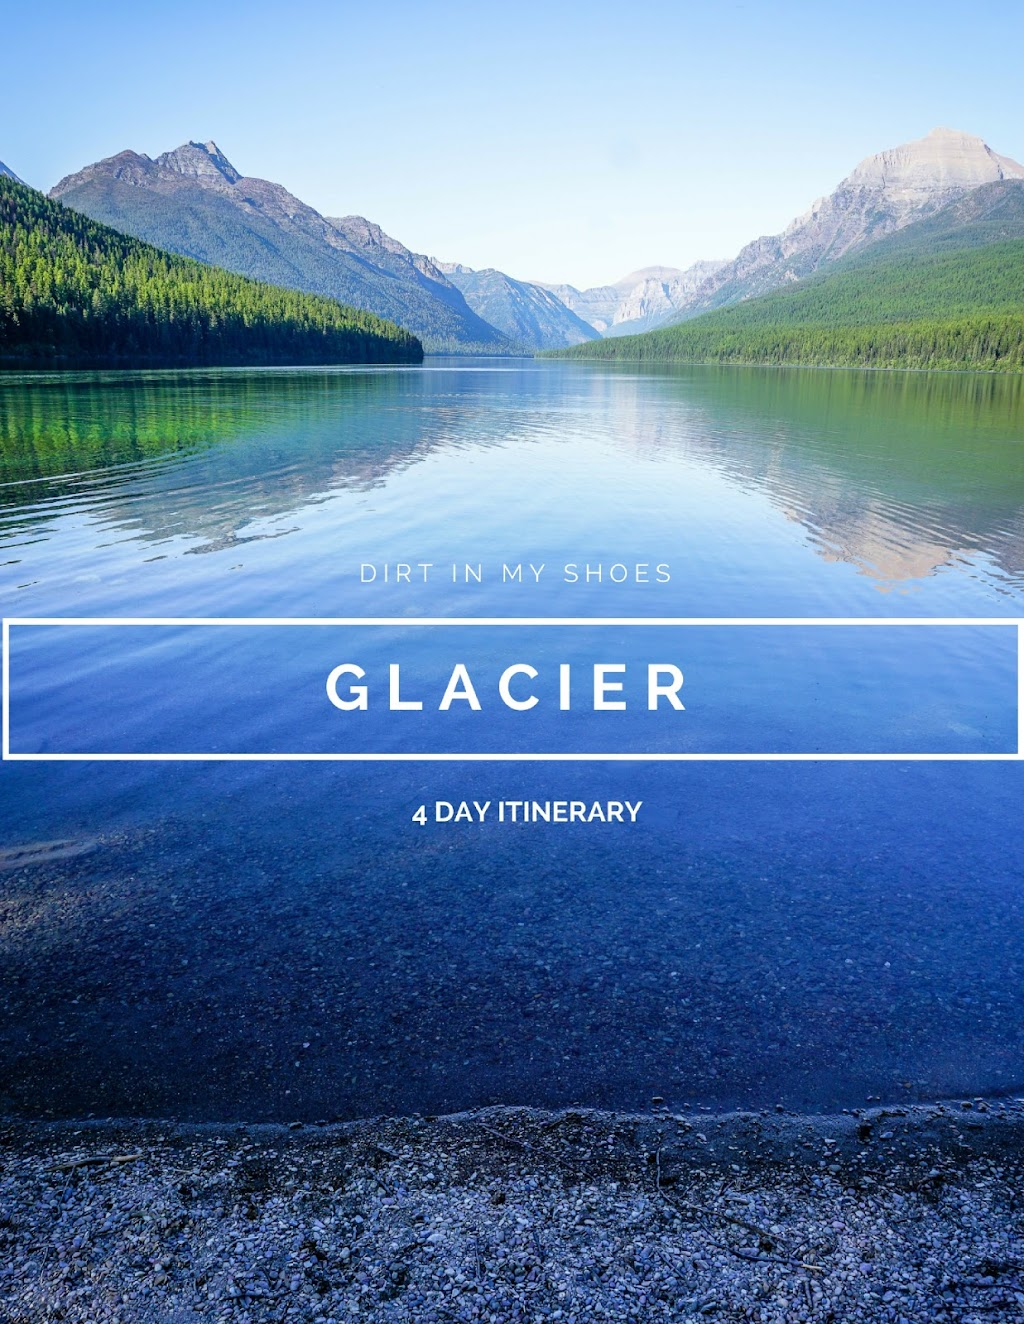 Glacier 4 Day Itinerary || Dirt In My Shoes